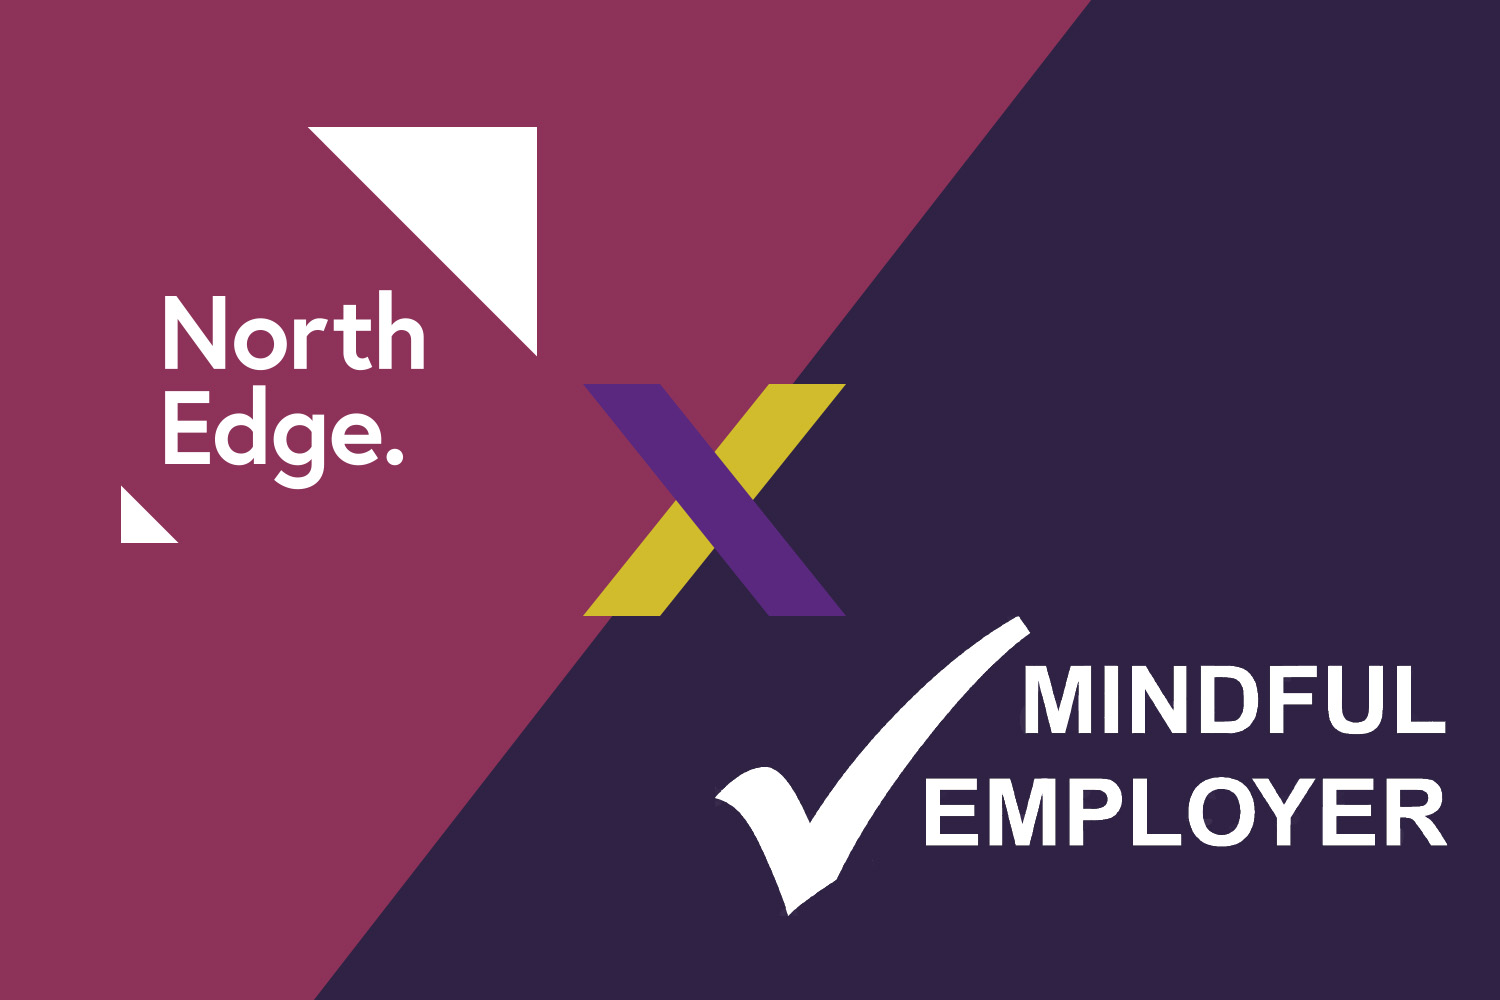 NorthEdge becomes signatory of Mindful Employer charter